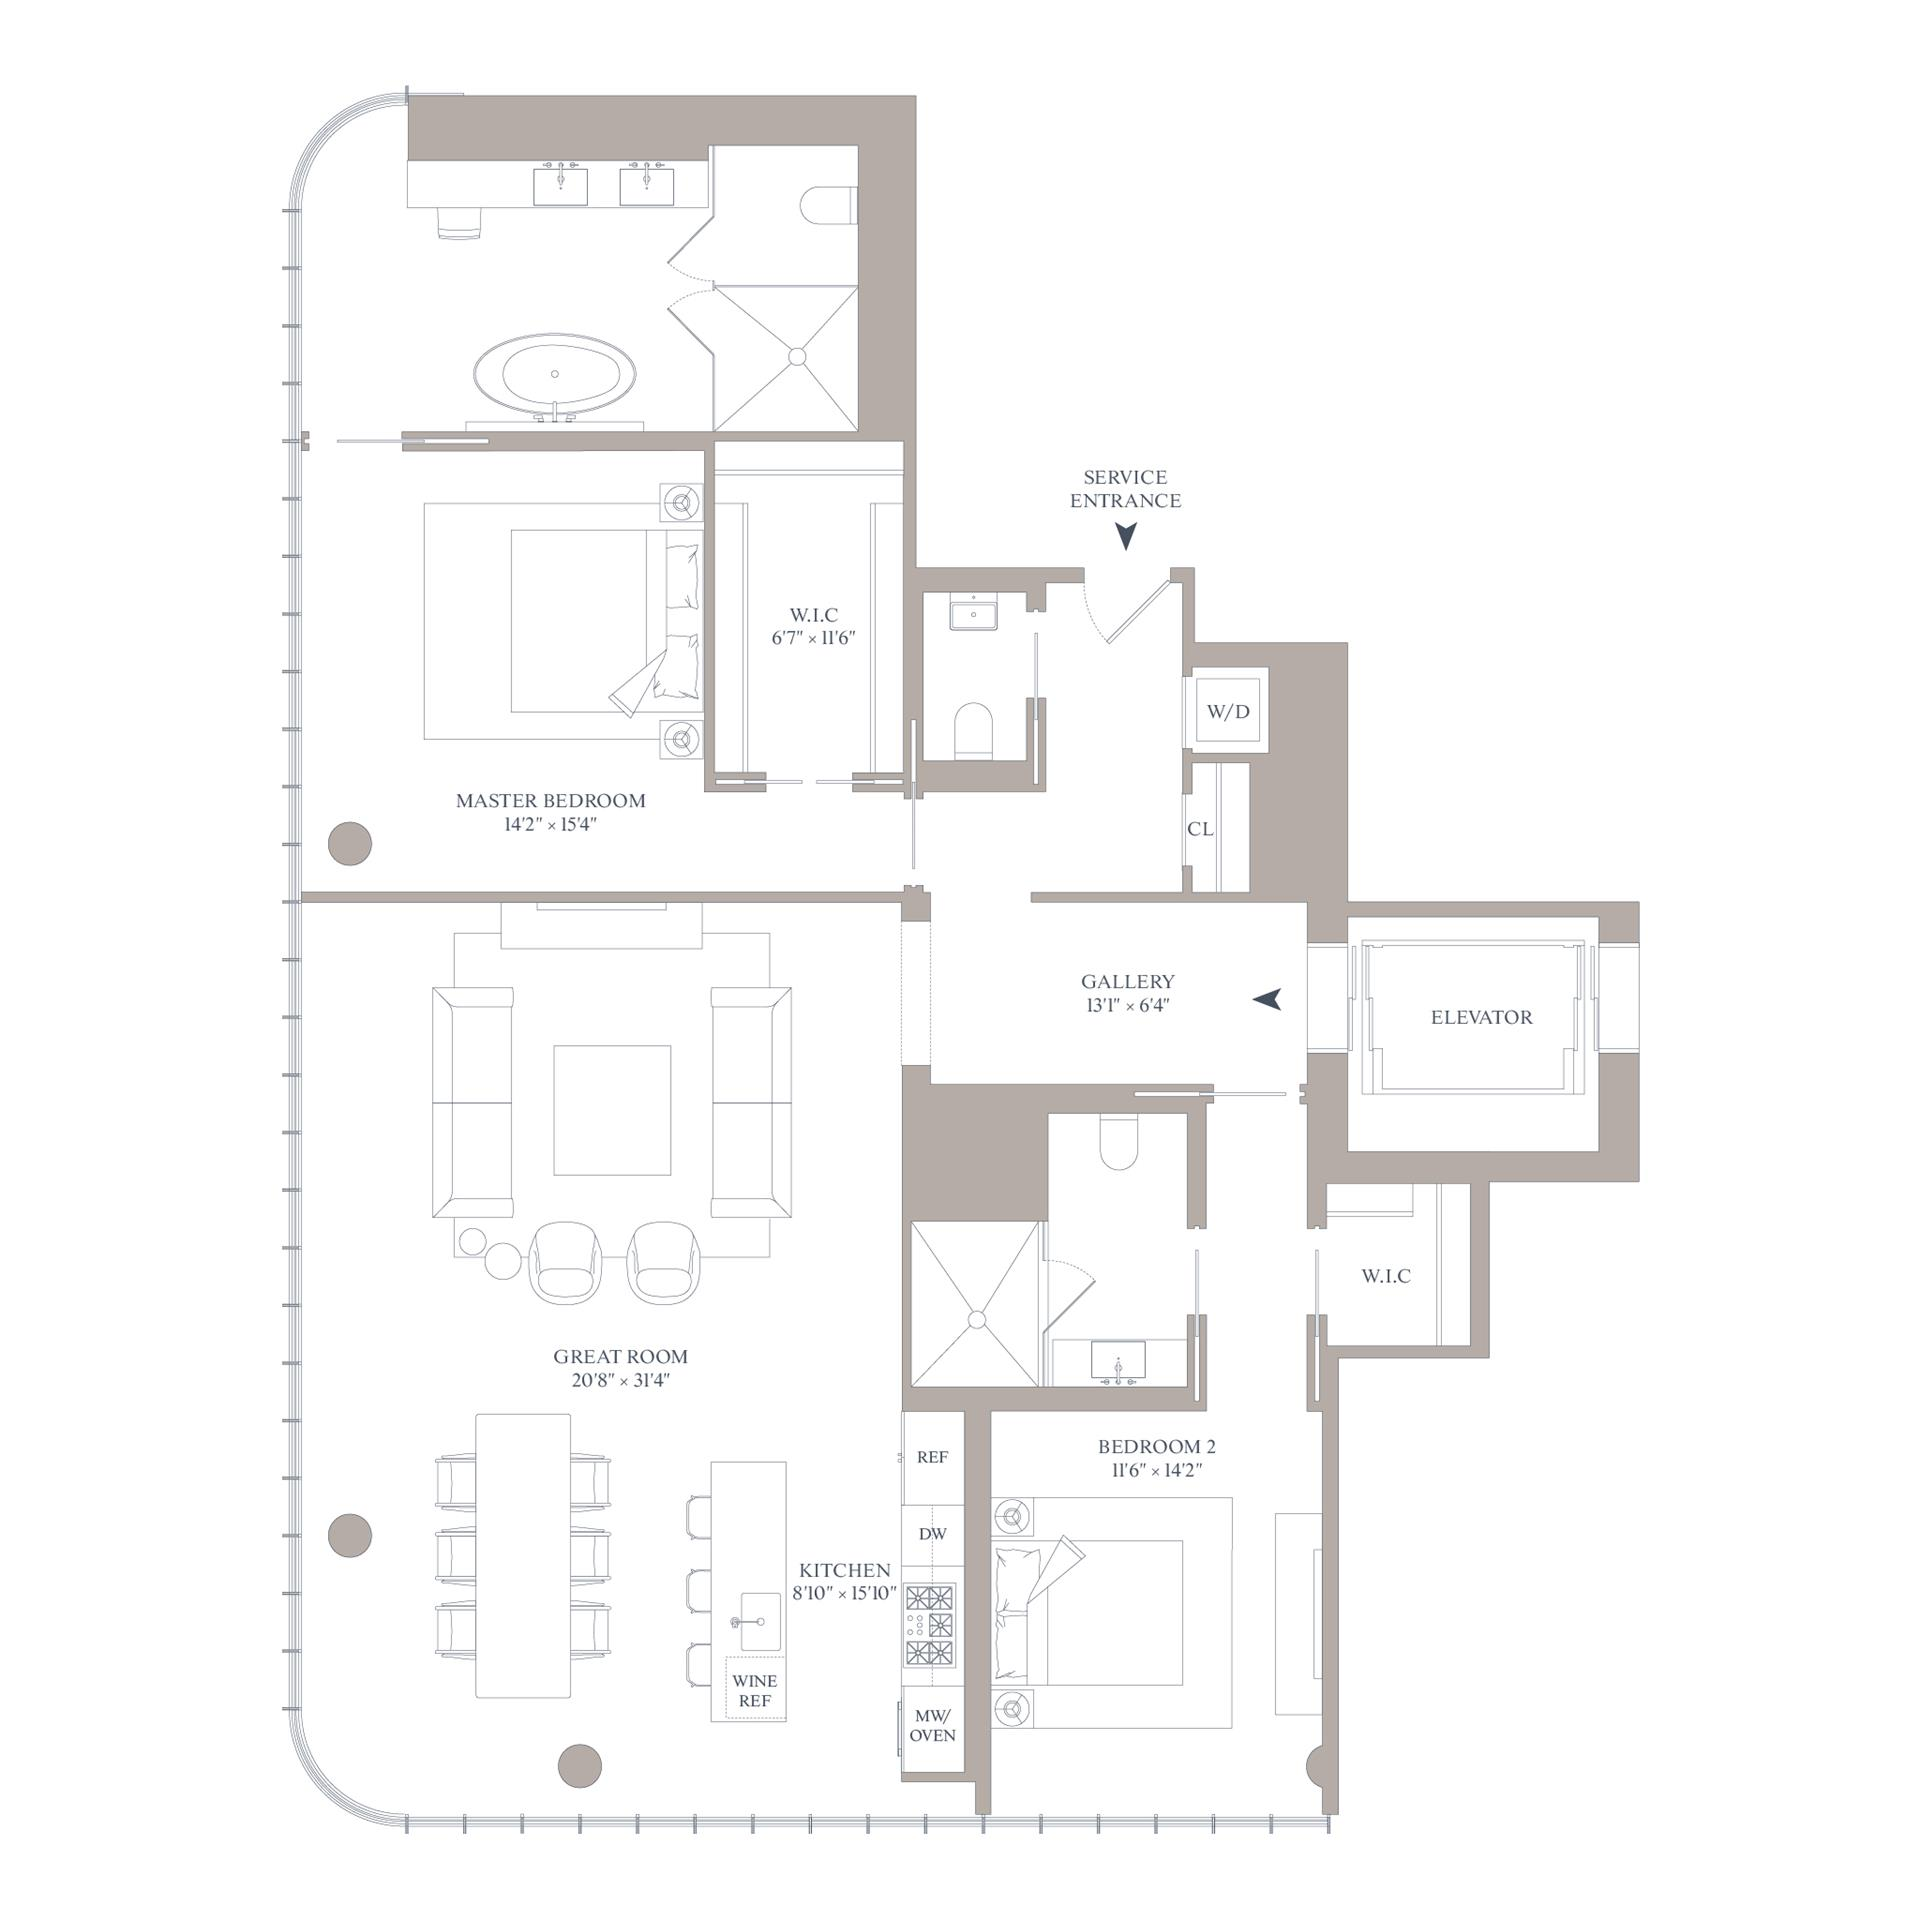 Floor plan of 565 Broome St, S18A - SoHo - Nolita, New York